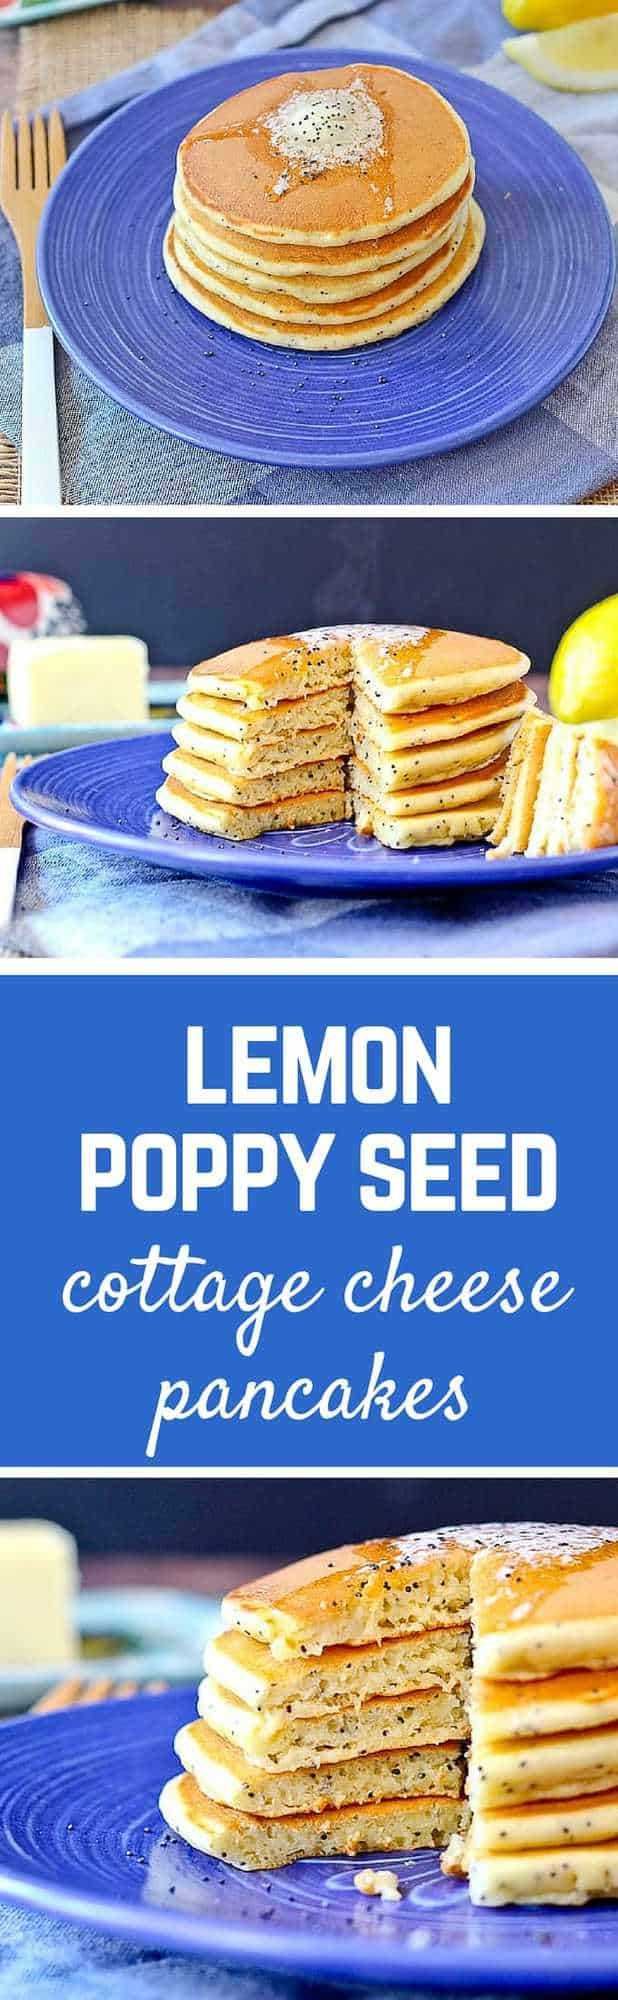 Lemon Poppy Seed Pancakes With A Secret Ingredient For Added Protein! Get  The Easy Recipe